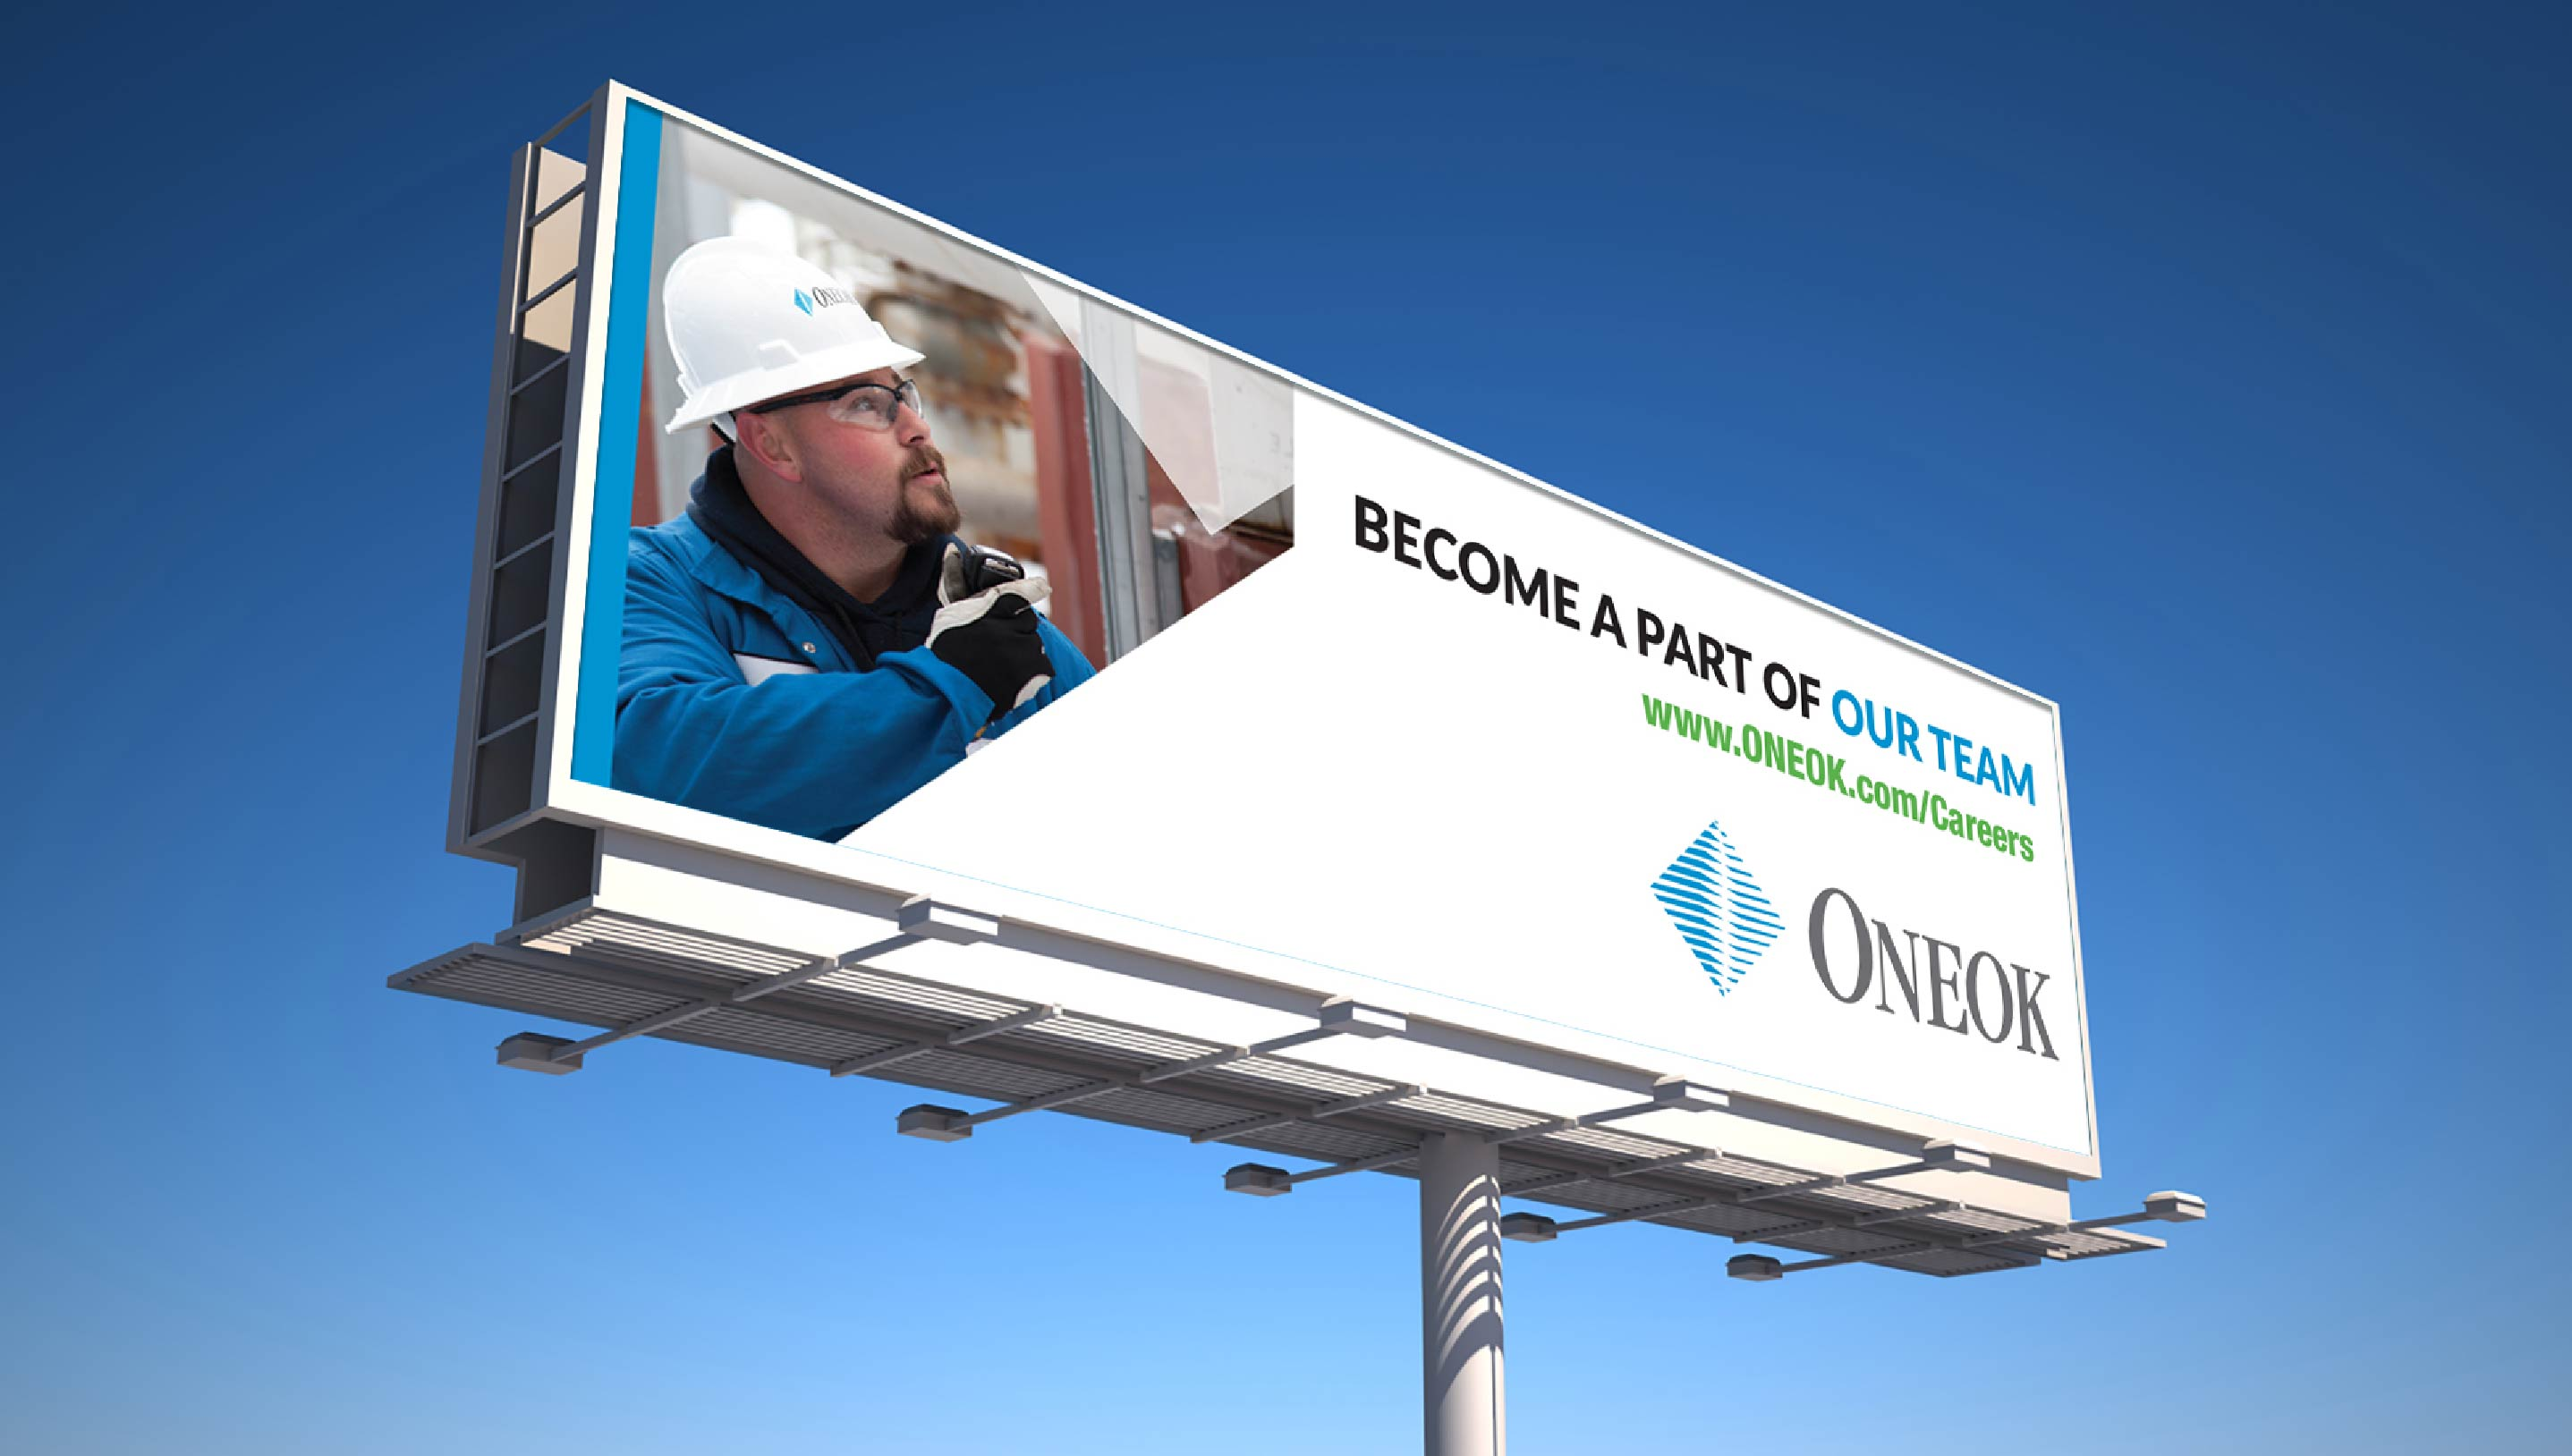 Oneok Billboard